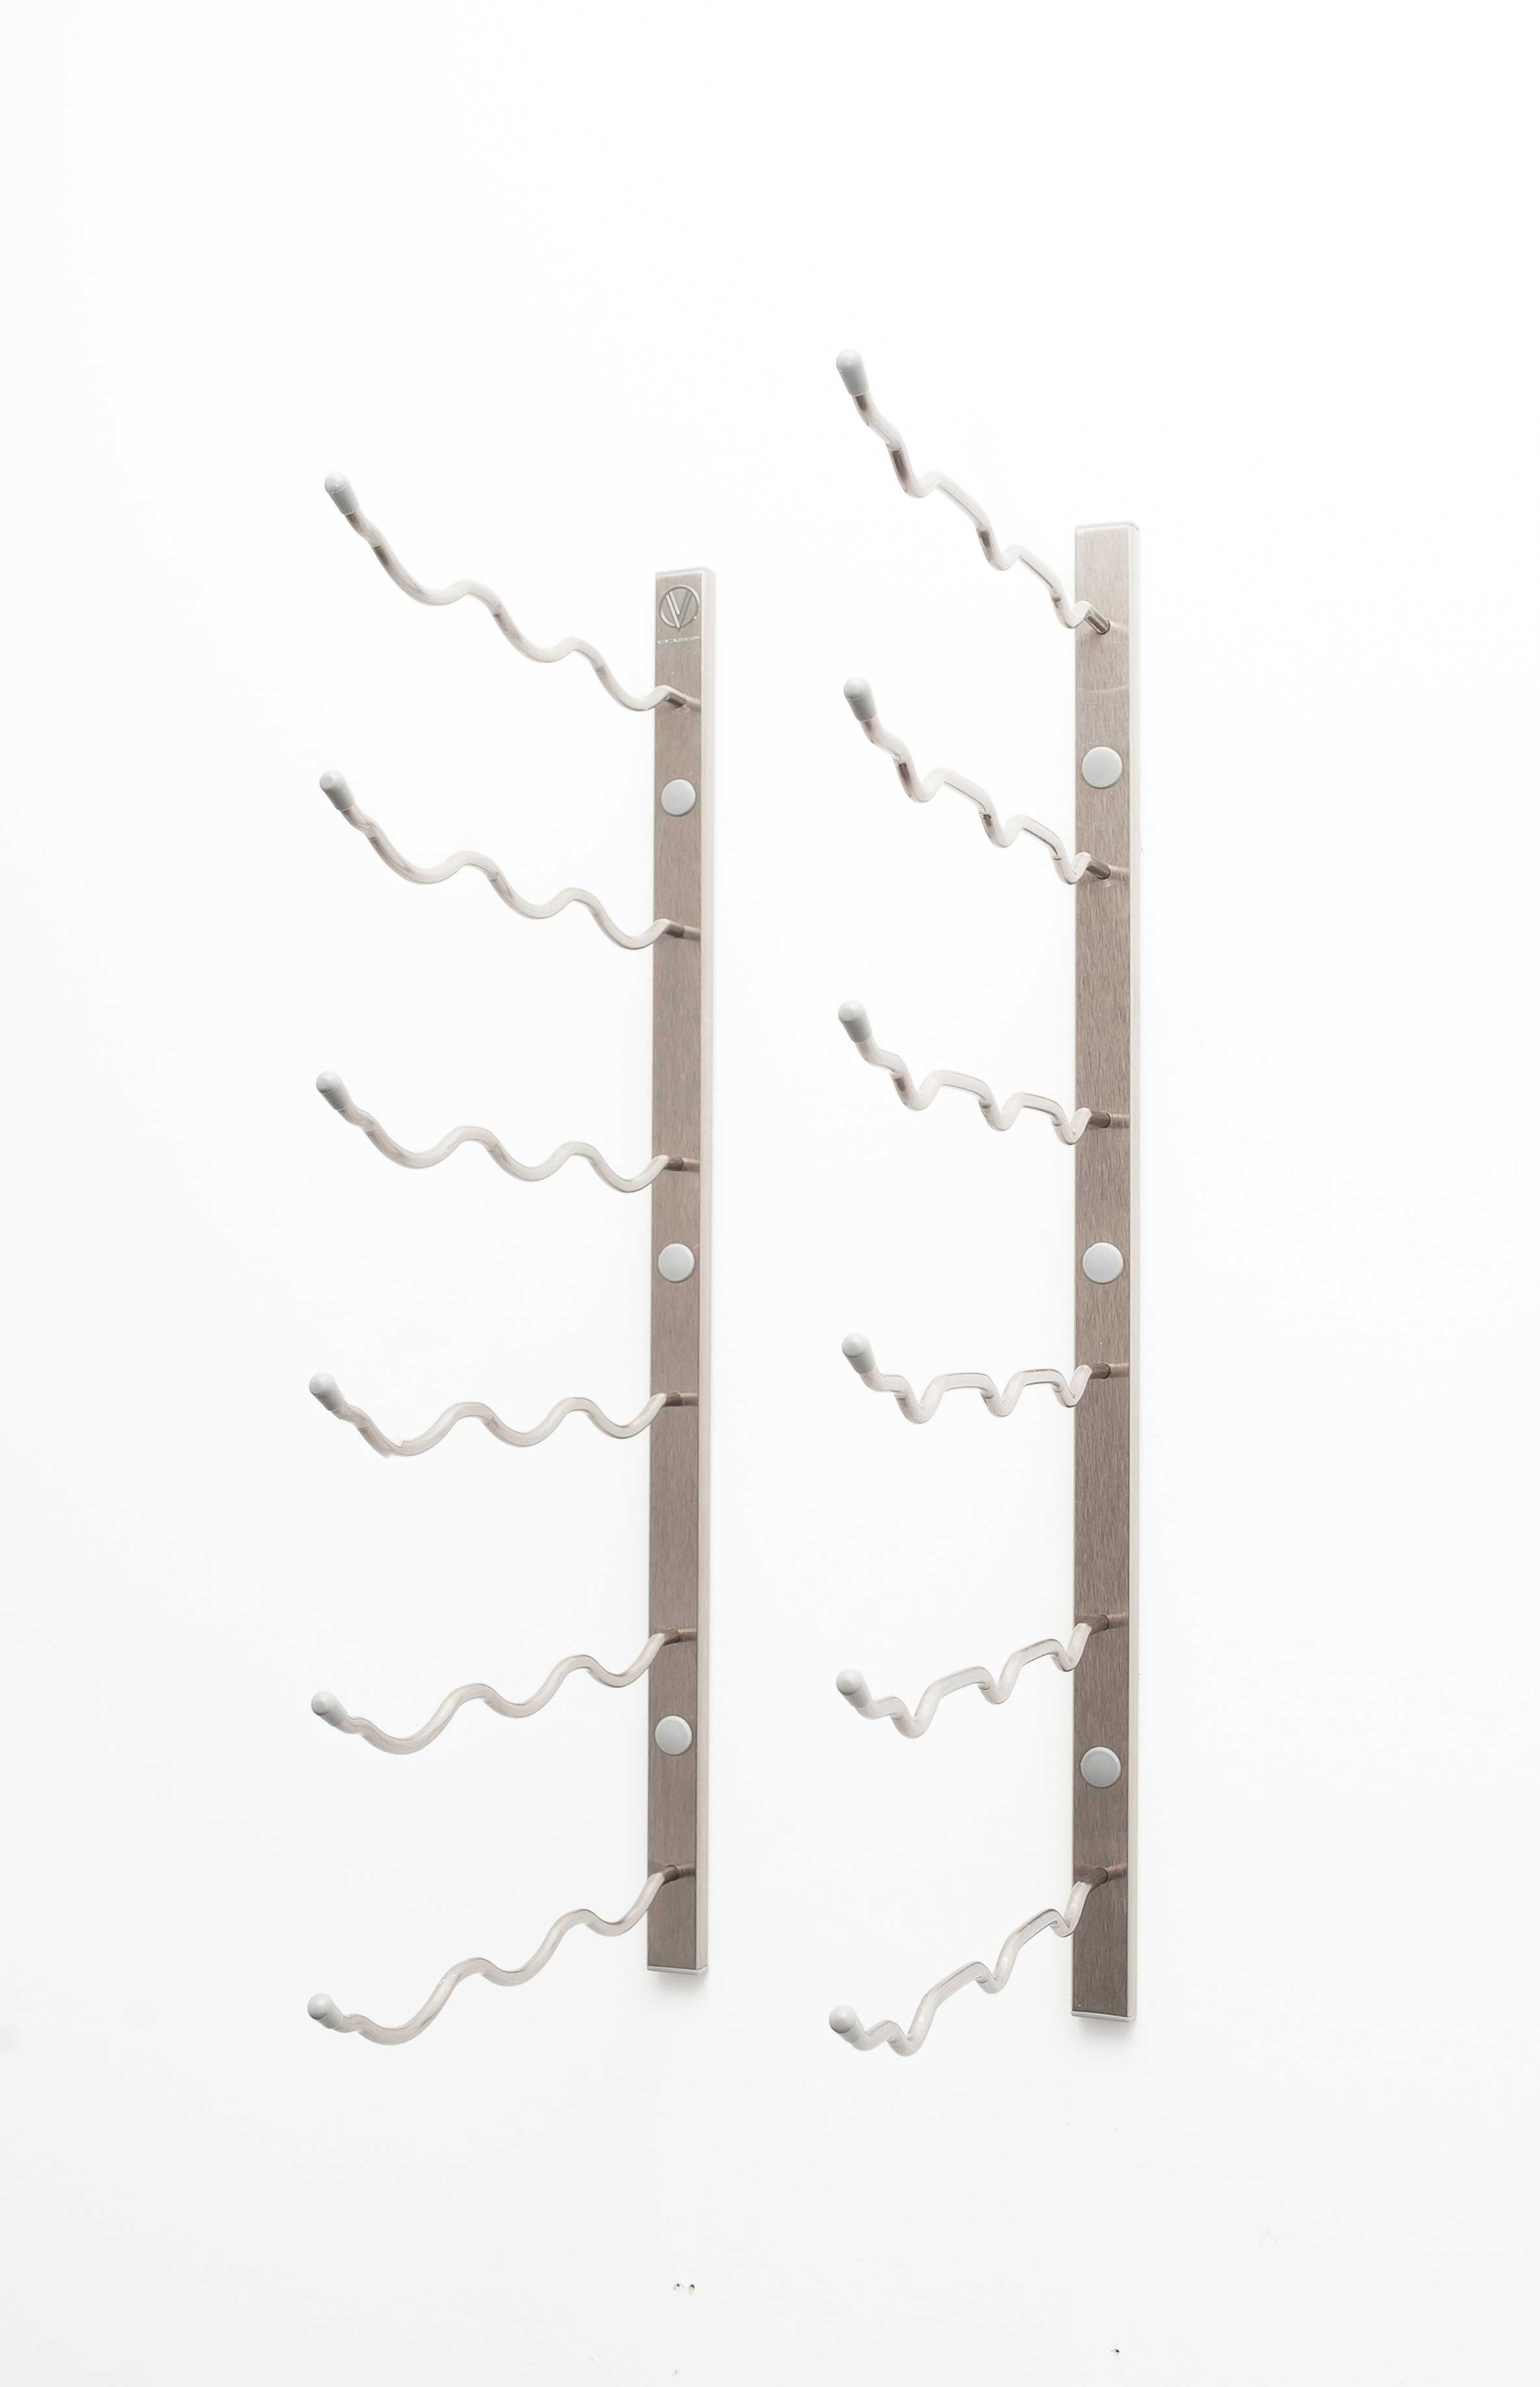 2 Wall Mount 18 Bottle Wine Rack Brushed Nickel Finish